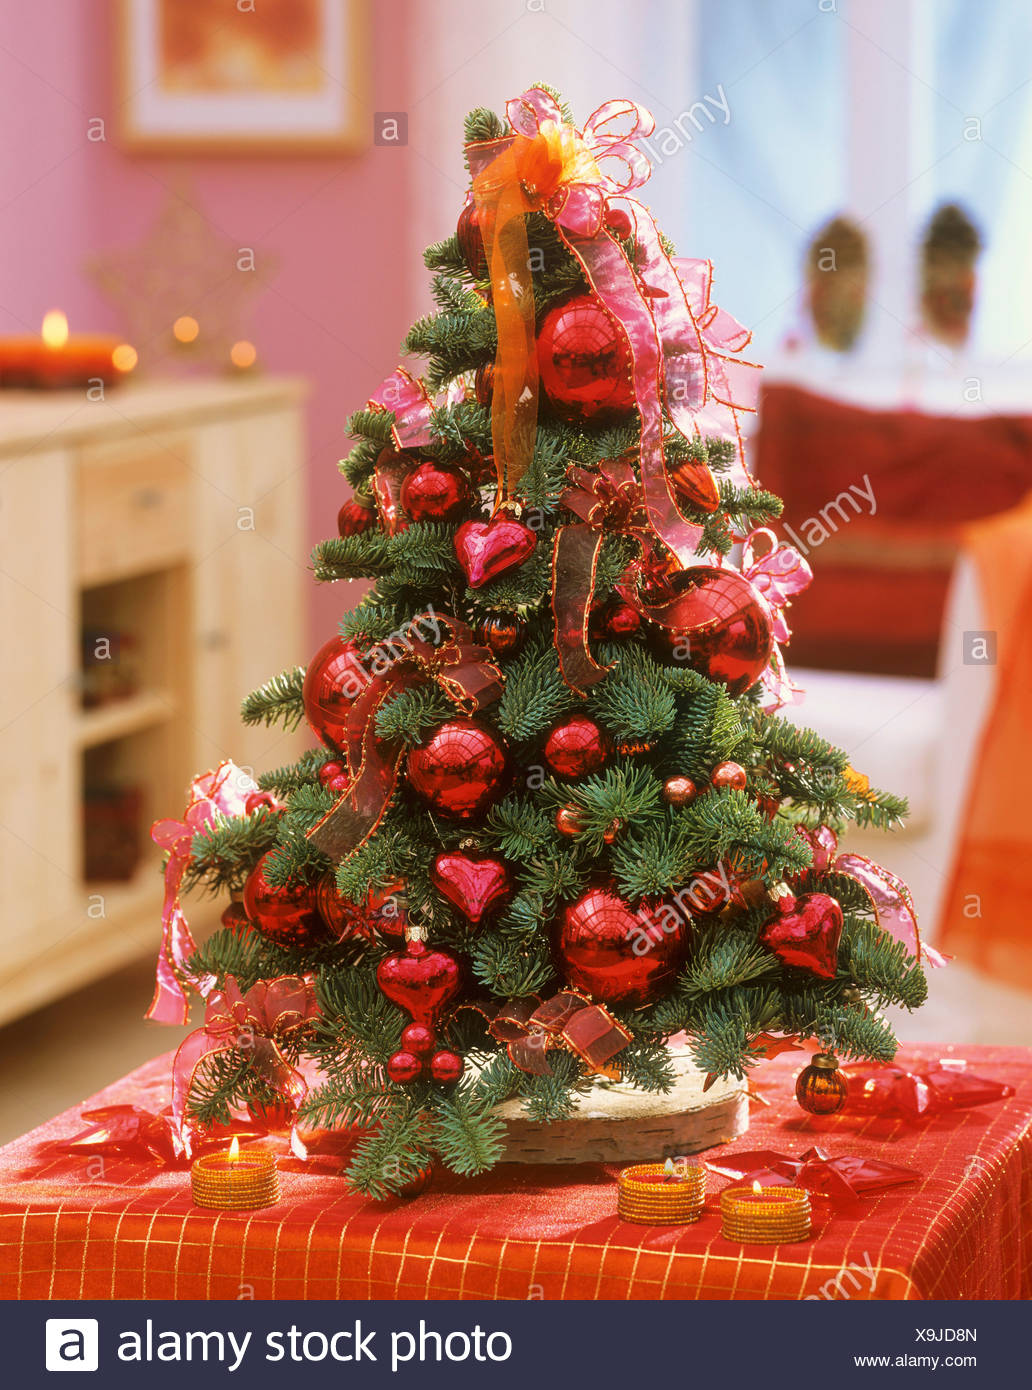 Noble fir decorated as Christmas tree Stock Photo: 281303365 - Alamy